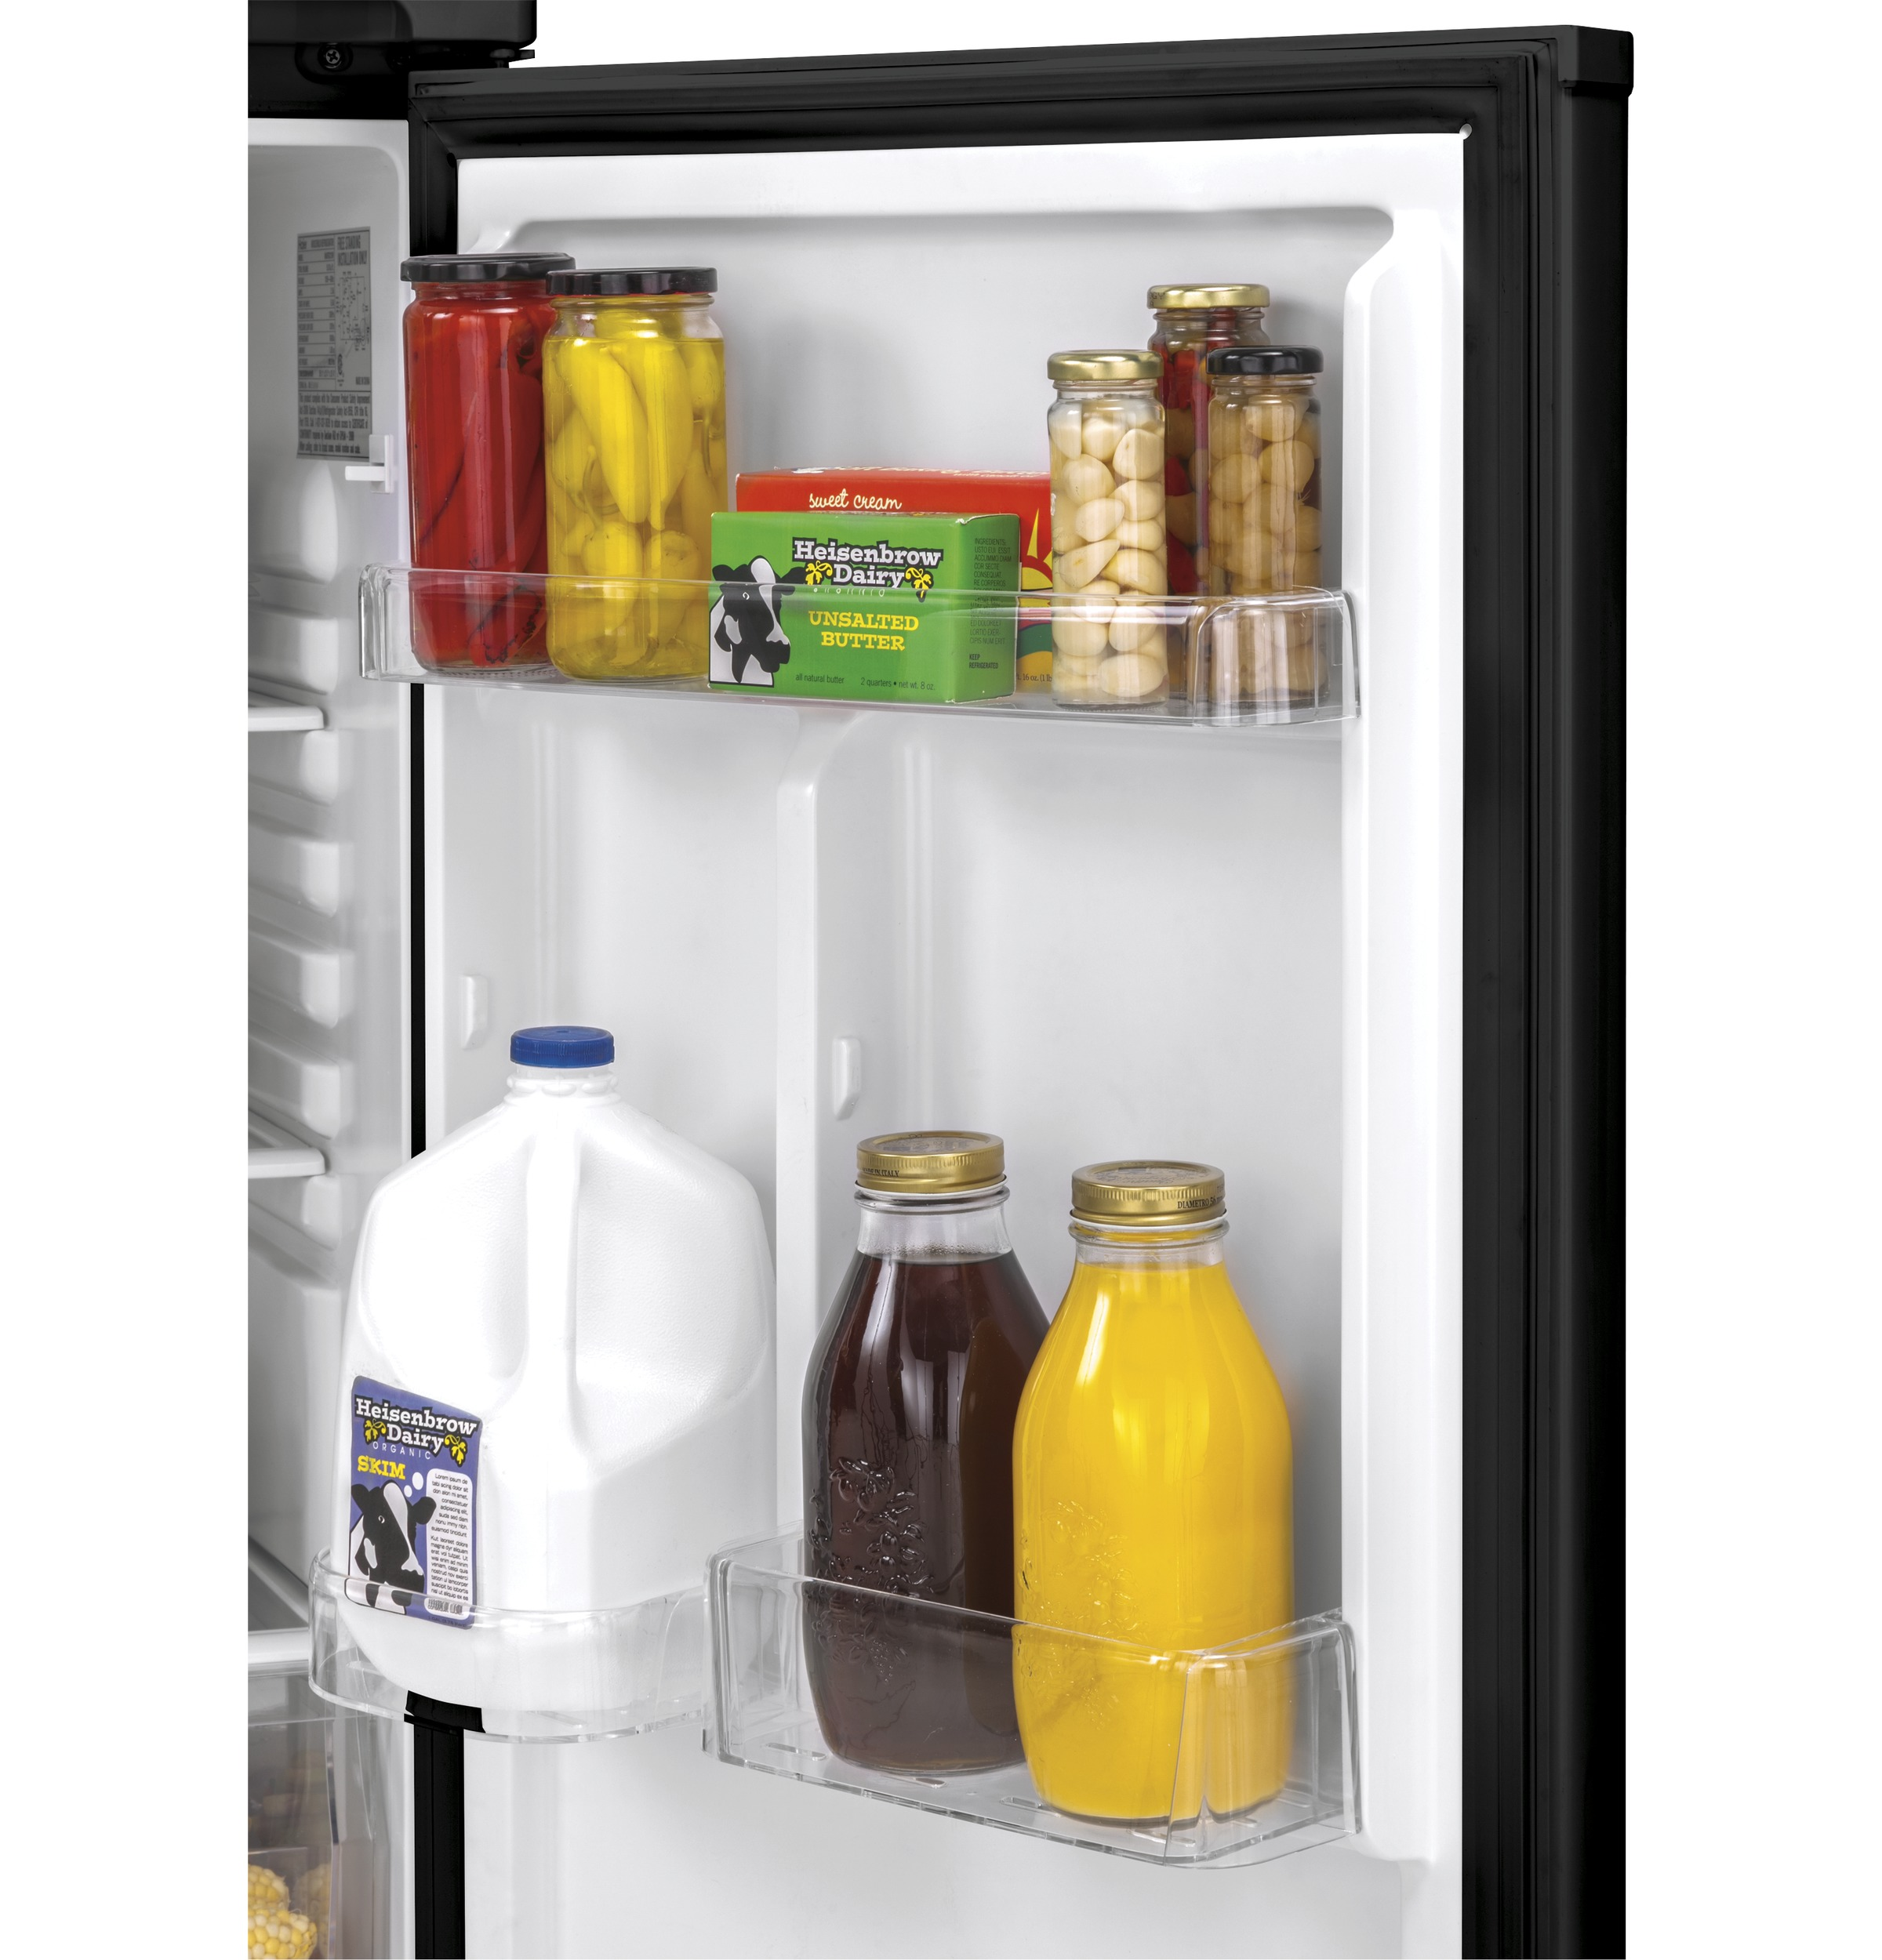 Model: HA10TG21SS | Haier 9.8 Cu. Ft. Top Freezer Refrigerator